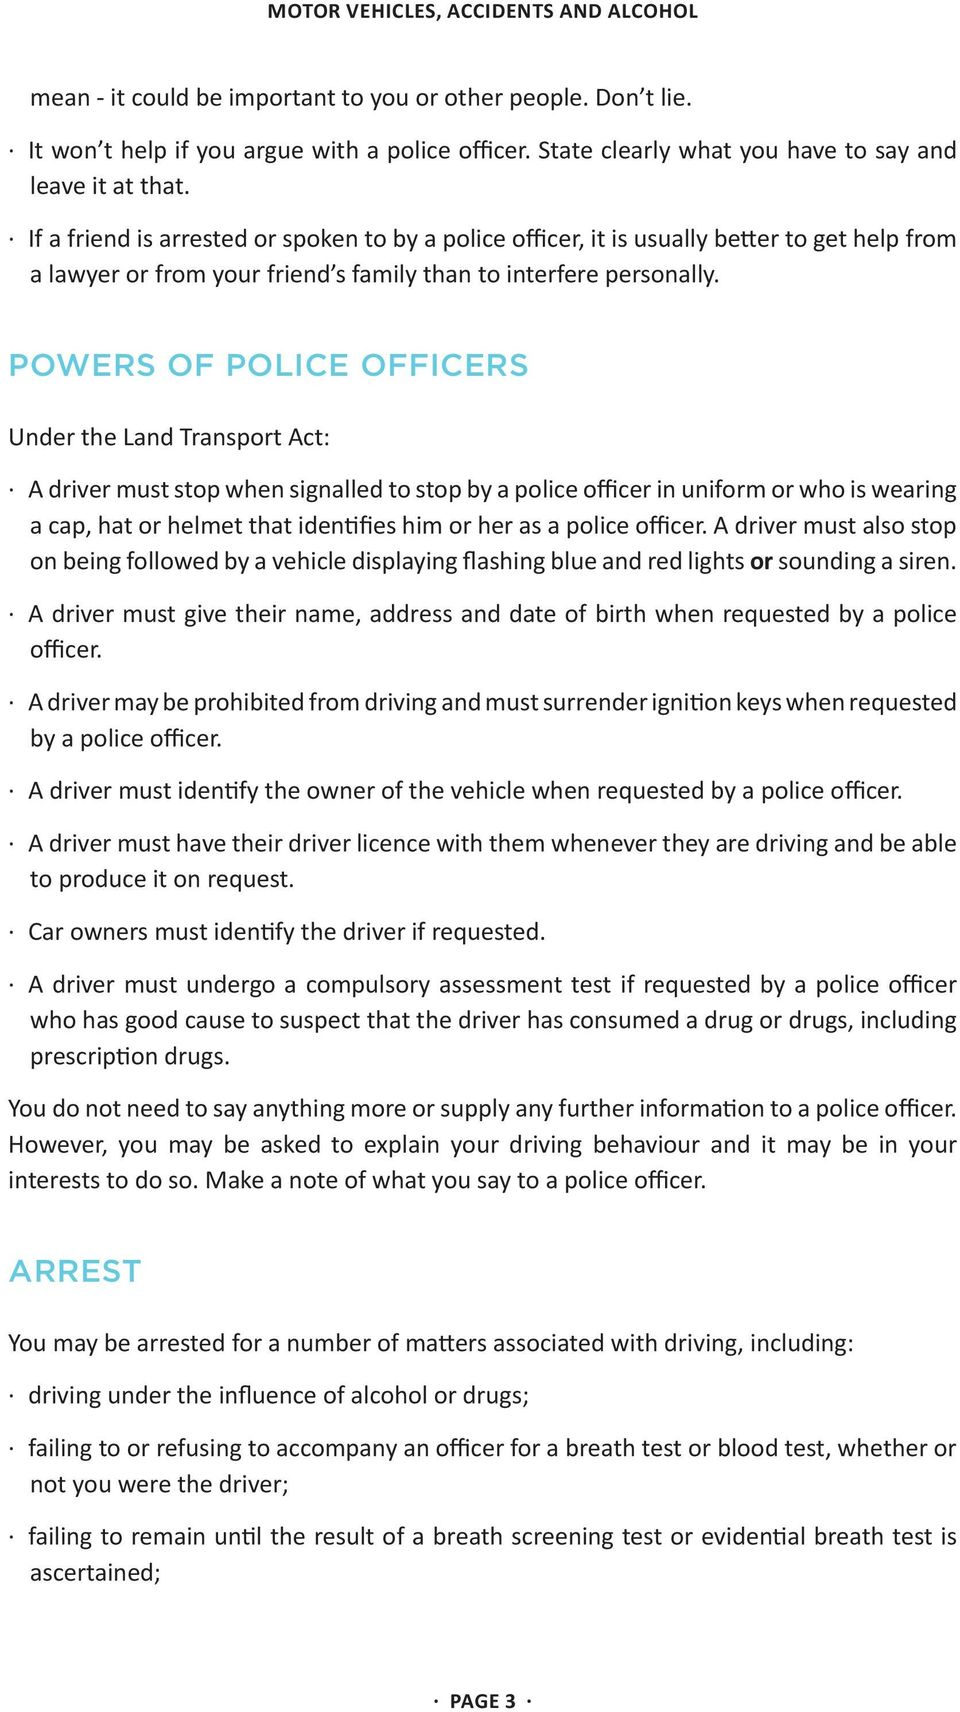 POWERS OF POLICE OFFICERS Under the Land Transport Act: A driver must stop when signalled to stop by a police officer in uniform or who is wearing a cap, hat or helmet that identifies him or her as a